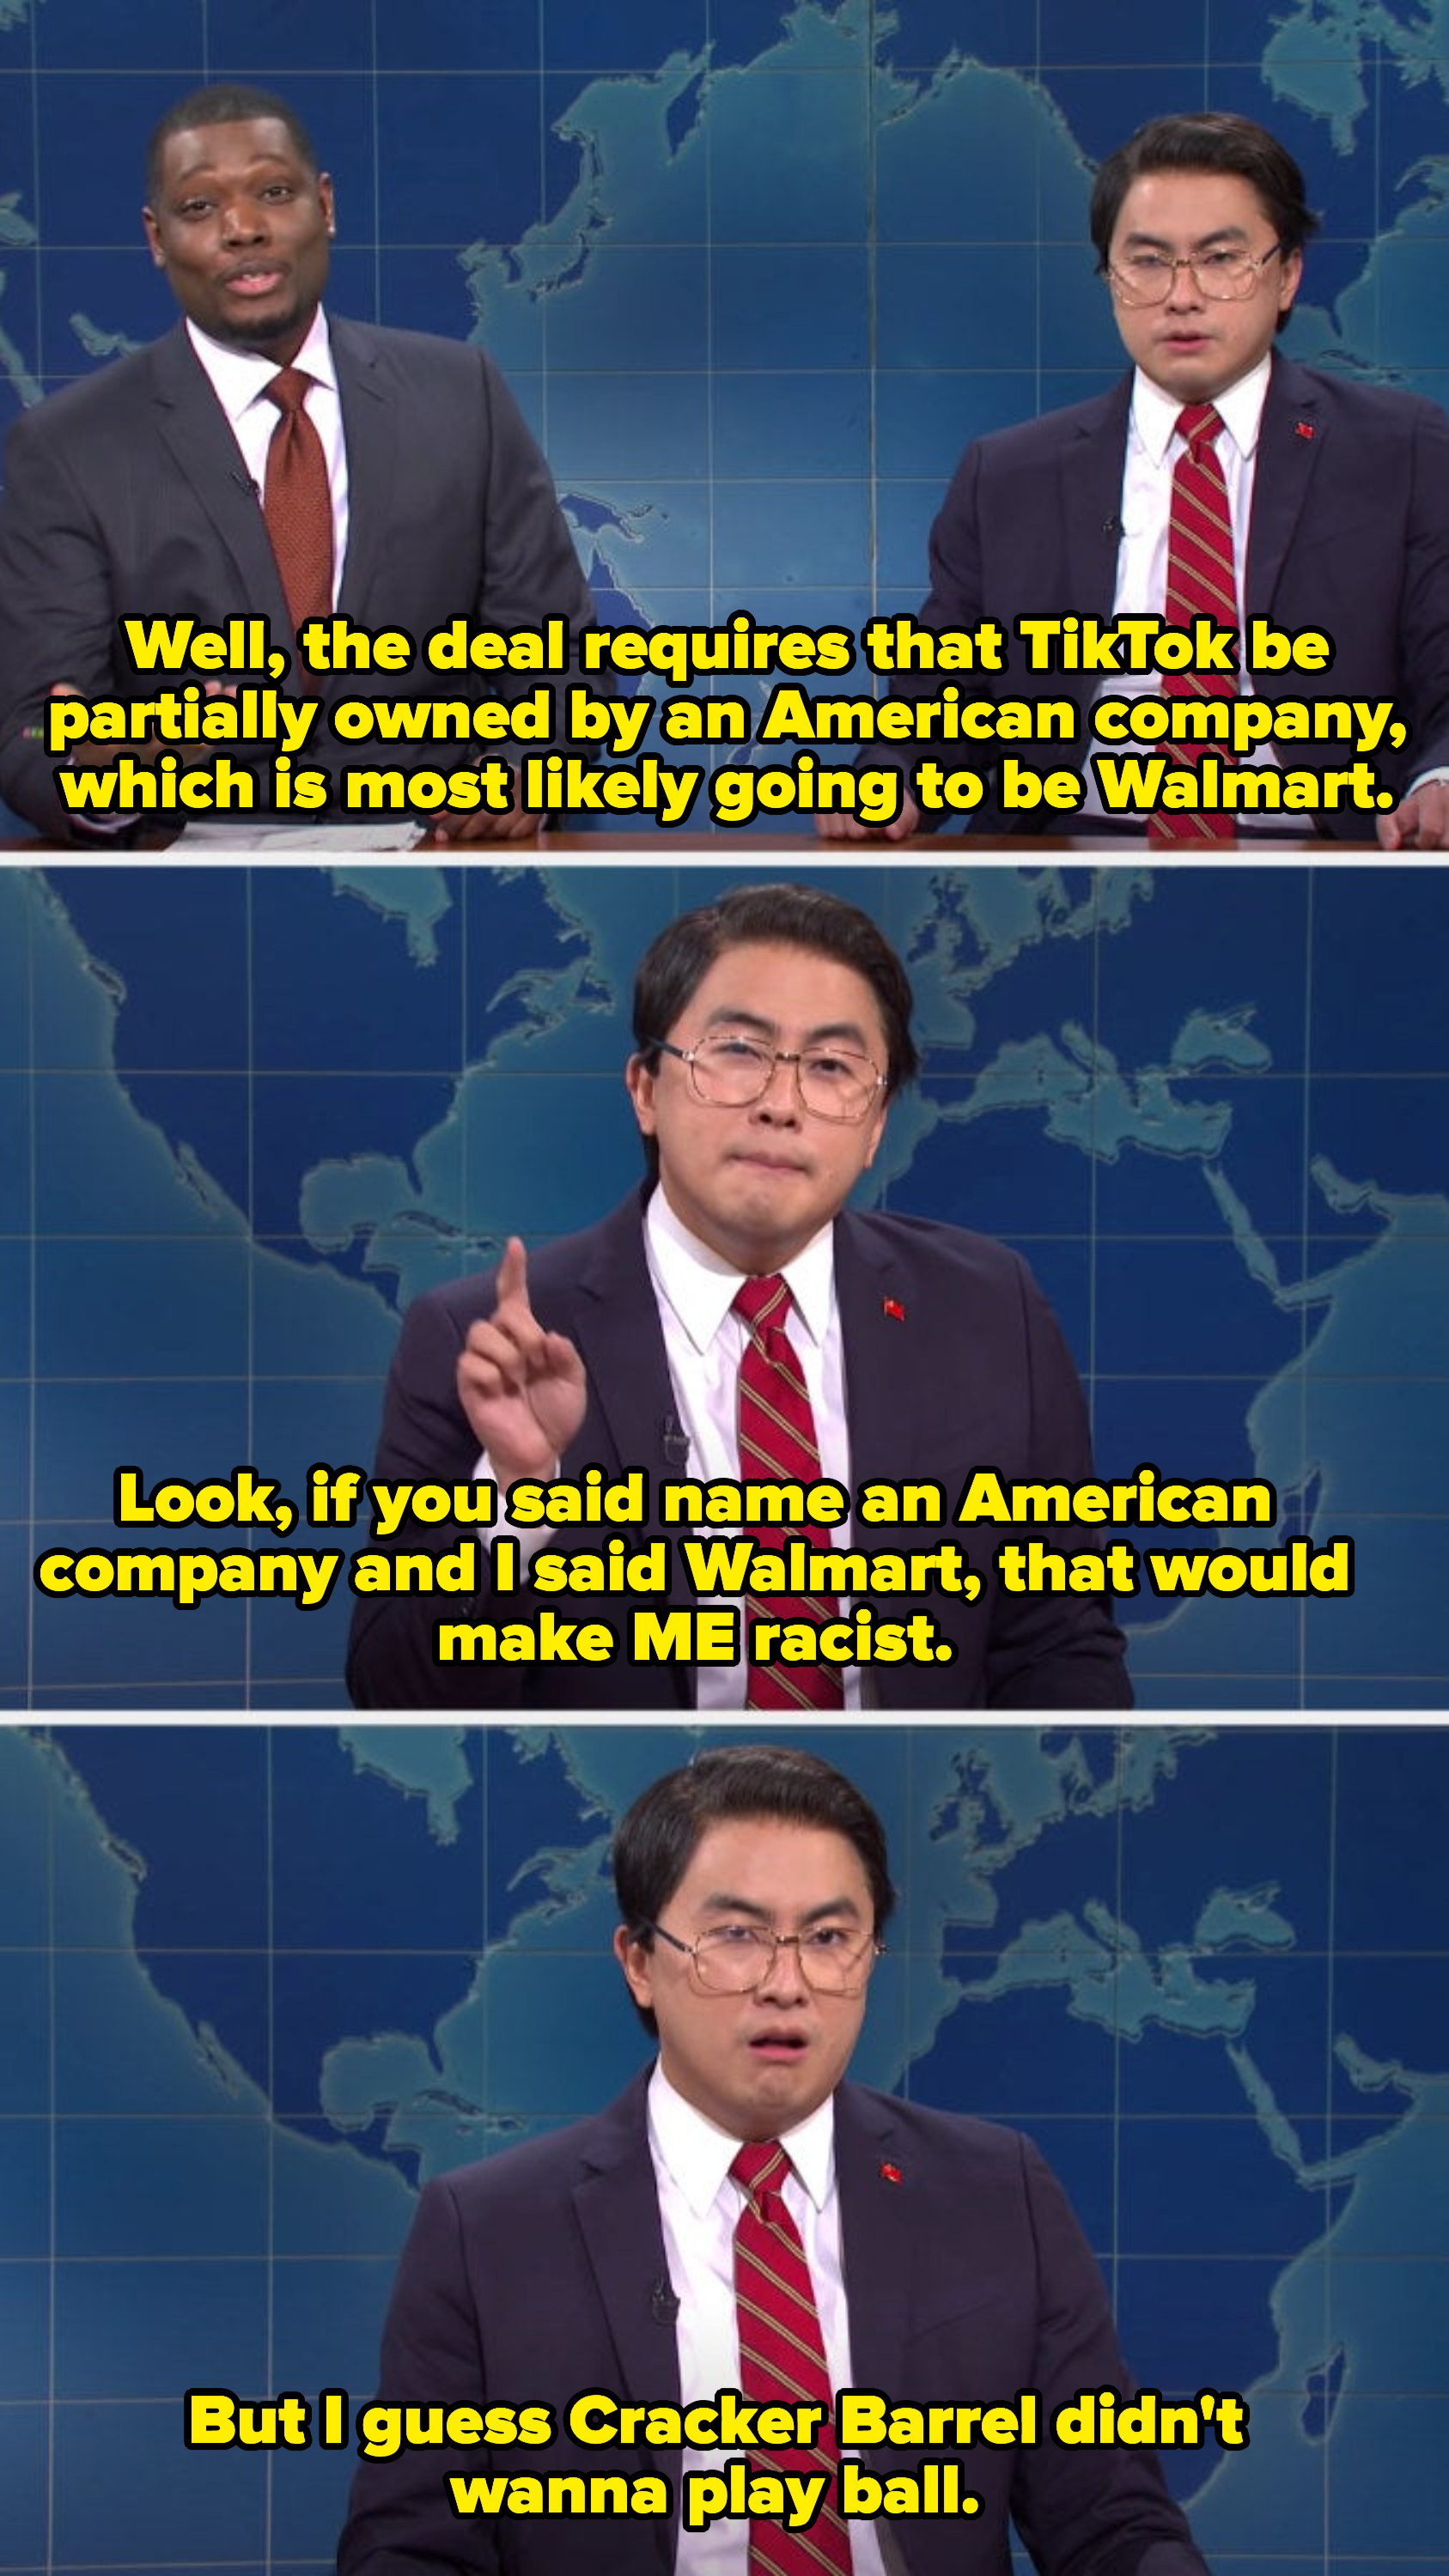 """Biao saying it would be racist of him to say """"Walmart"""" when naming an American company that would buy part of TikTok"""